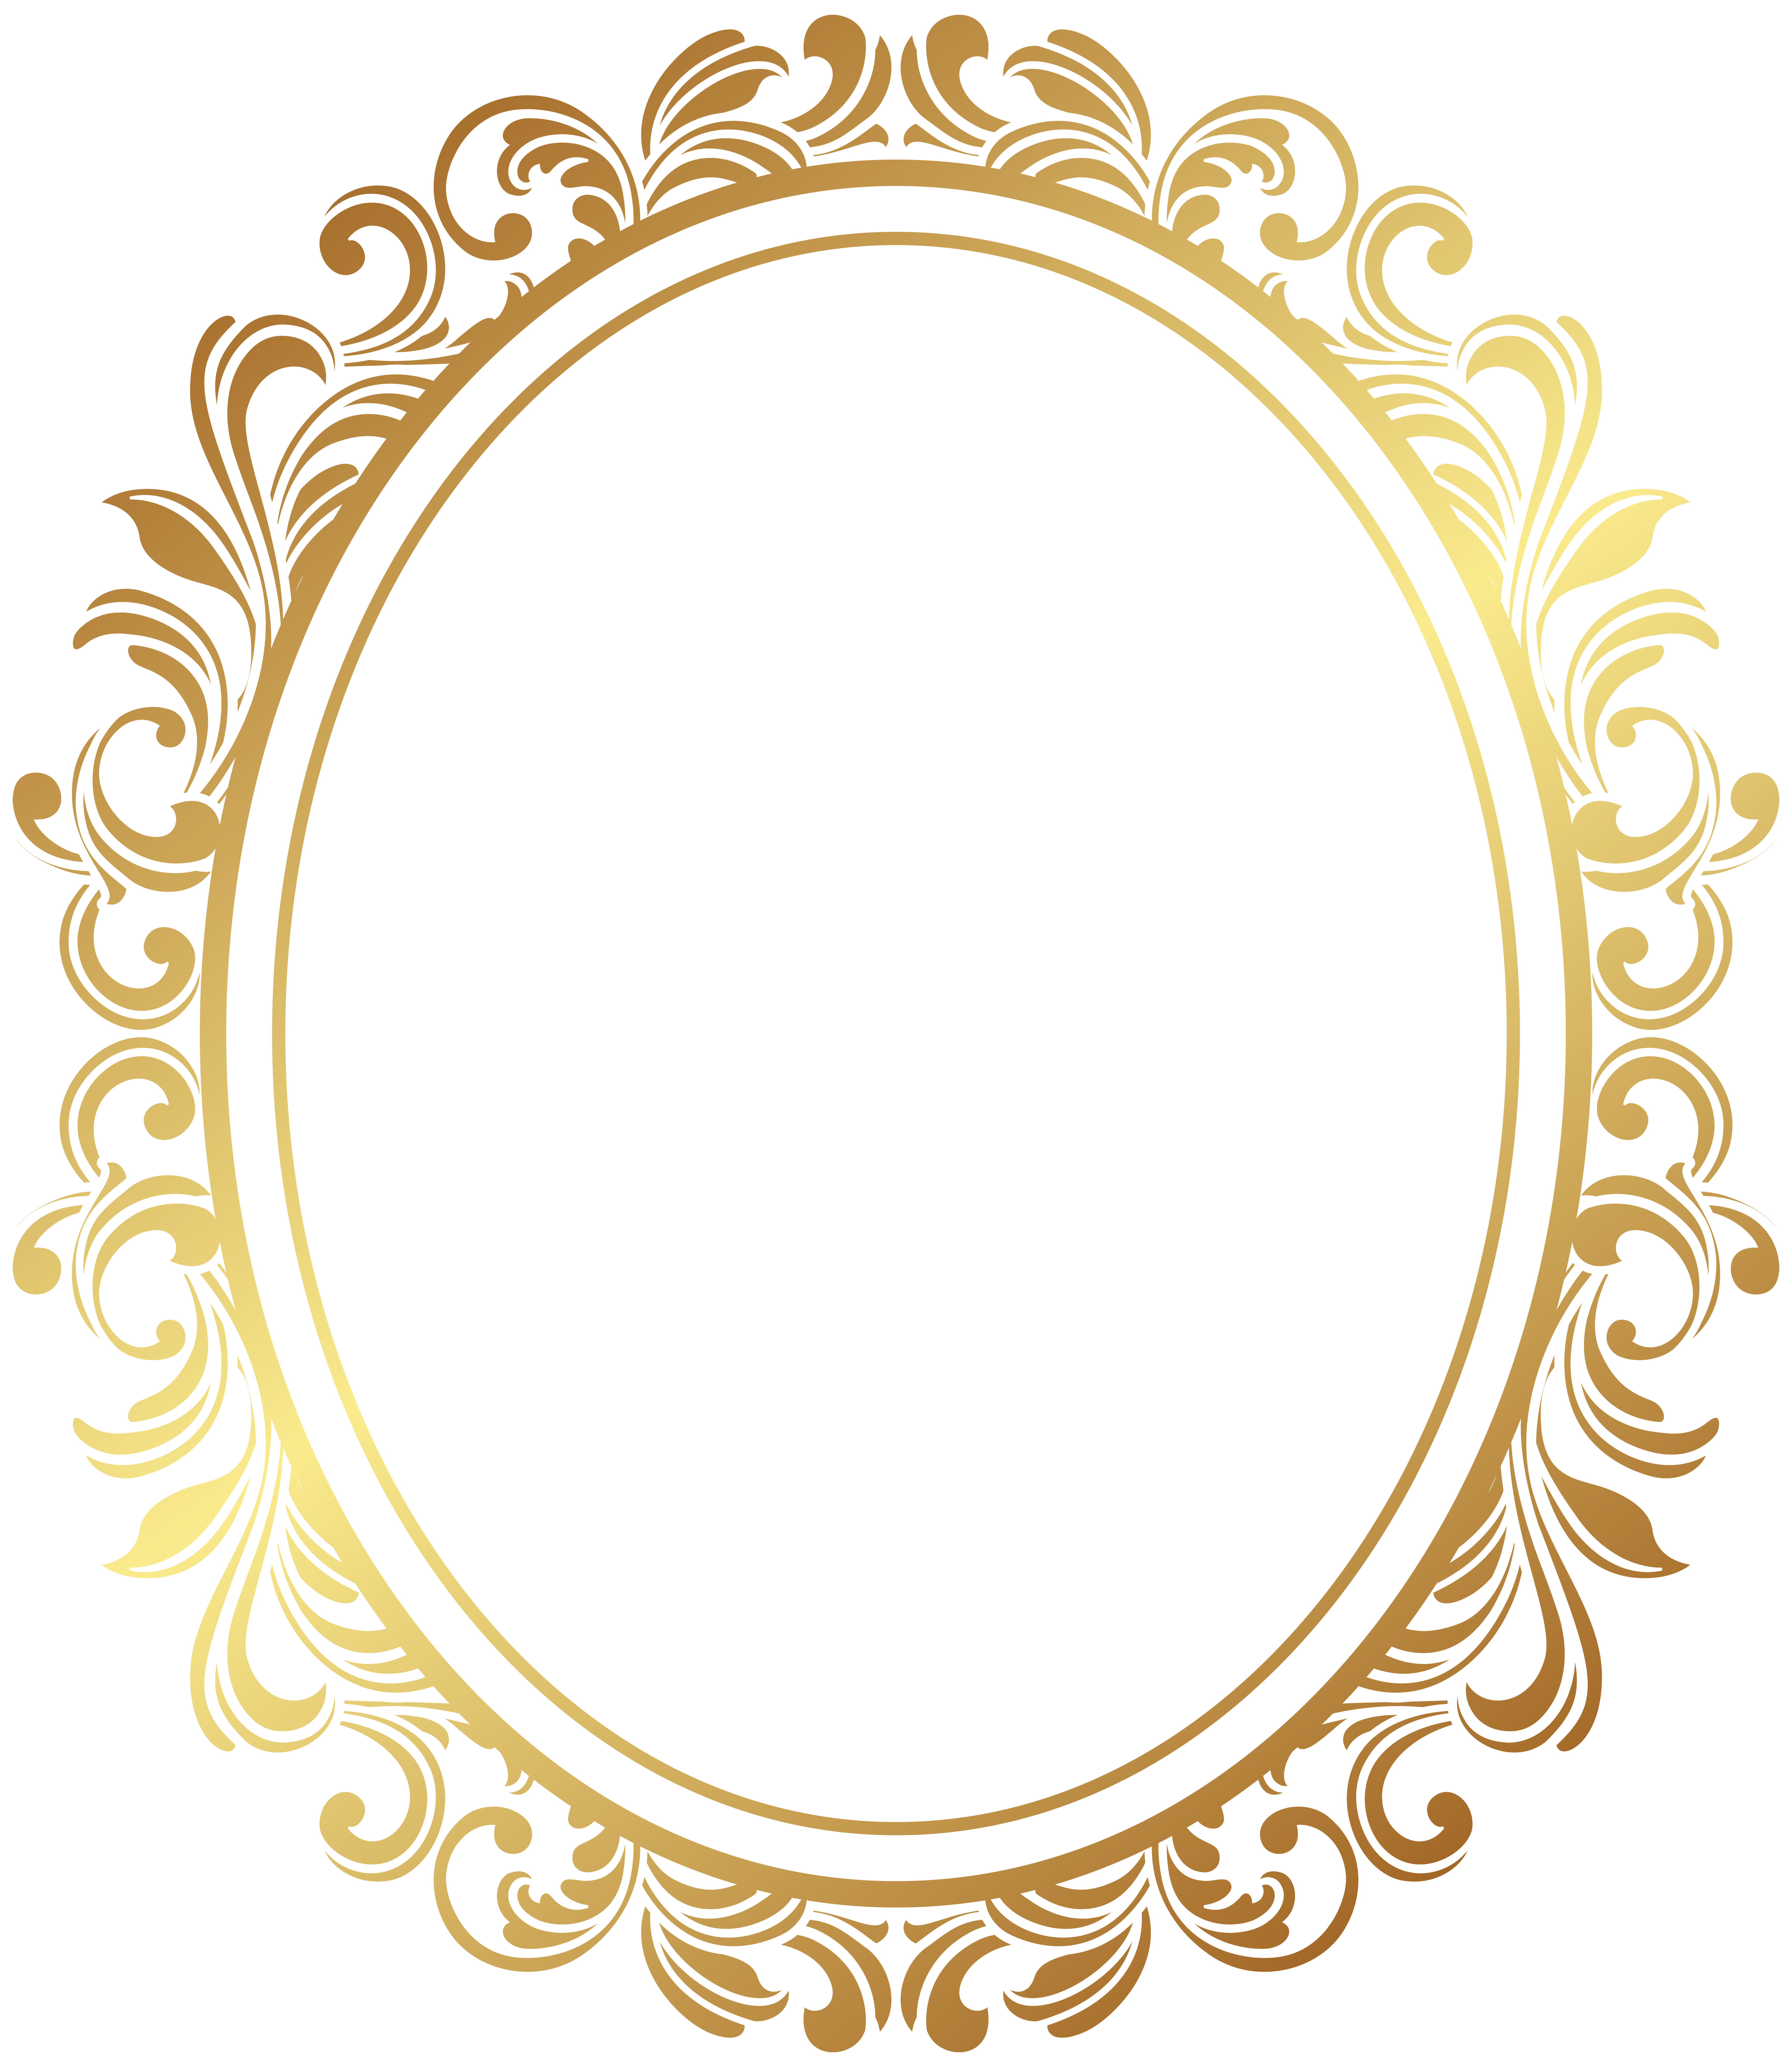 Clipart frame png. Oval border deco clip